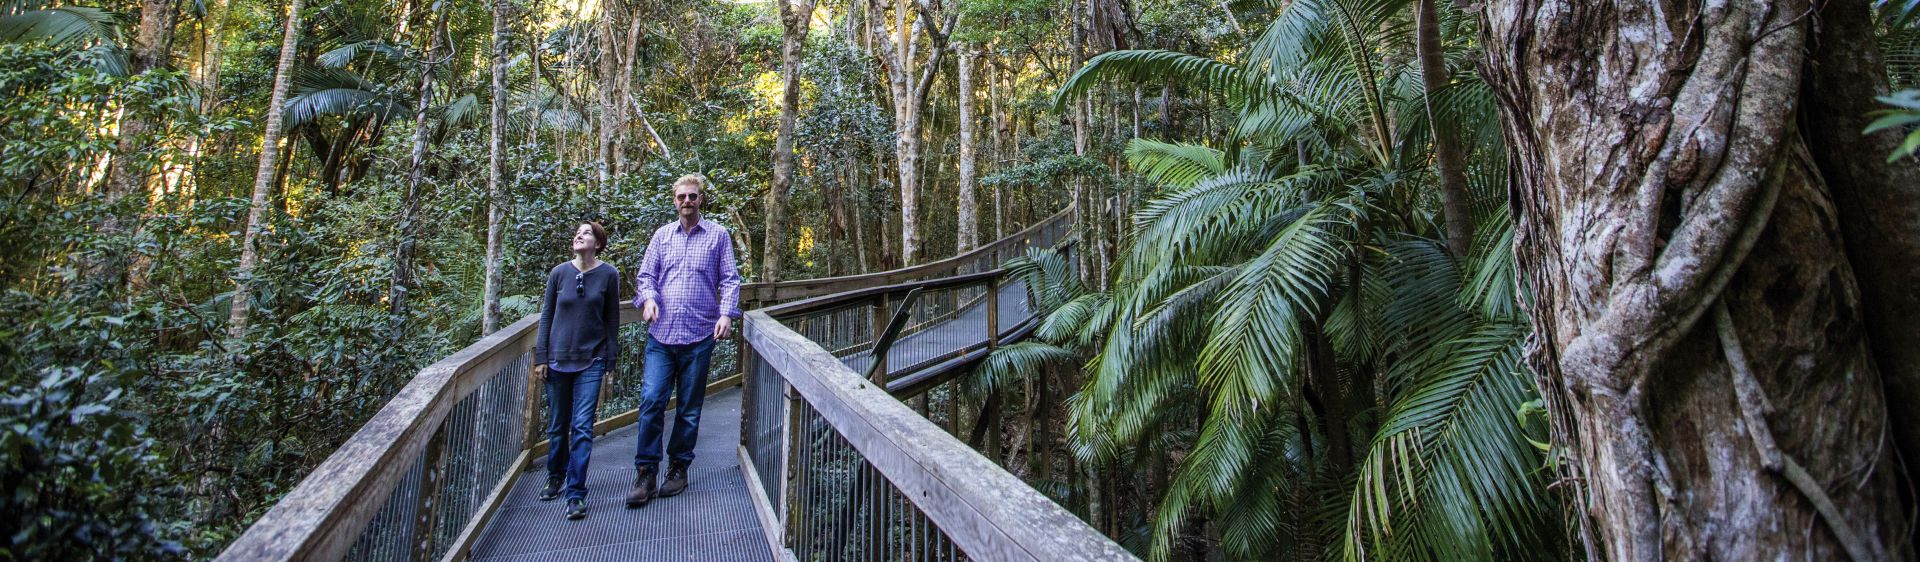 A couple stroll along the Sea Acres Rainforest boardwalk in Port Macquarie, NSW, Australia